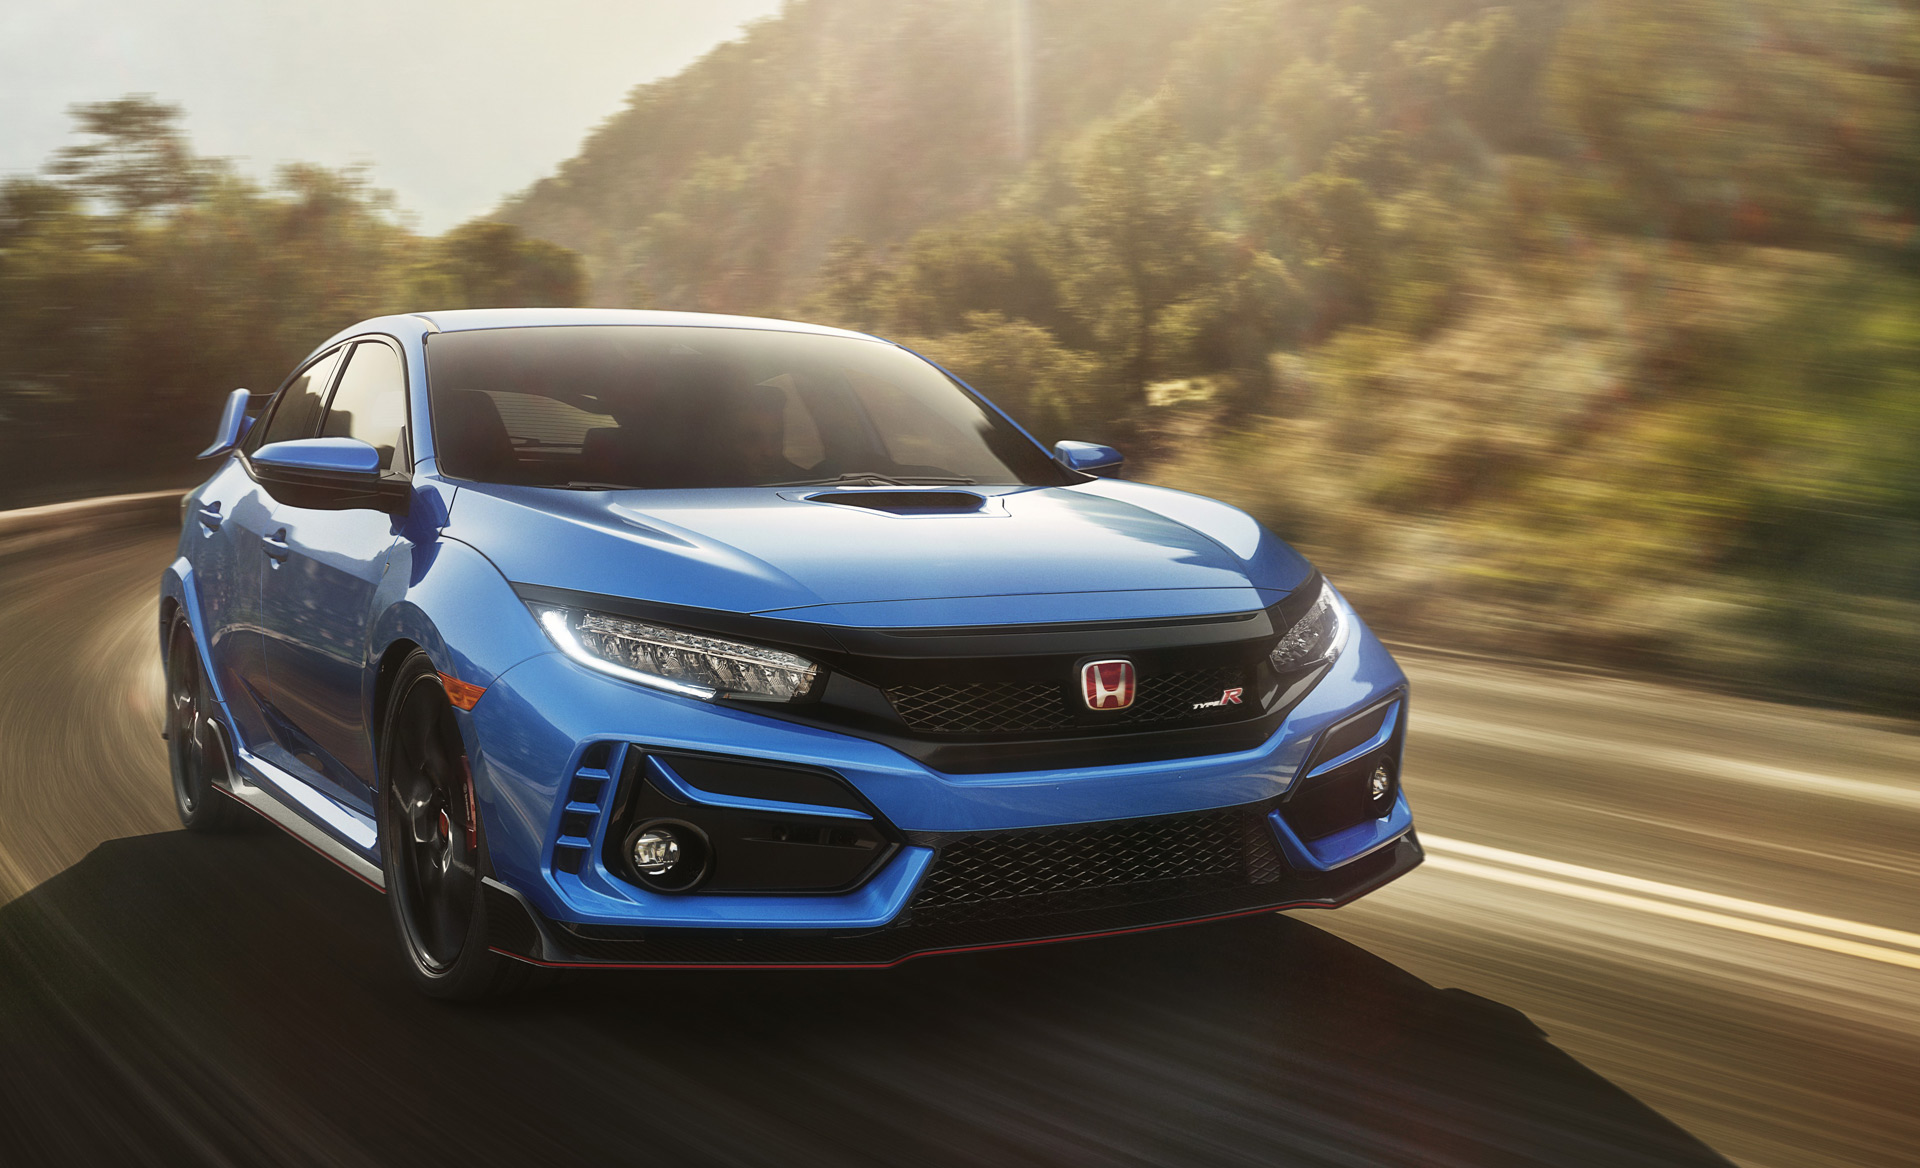 First Drive Review The 2020 Honda Civic Type R Irons Out Its Ride Not Its Clothes